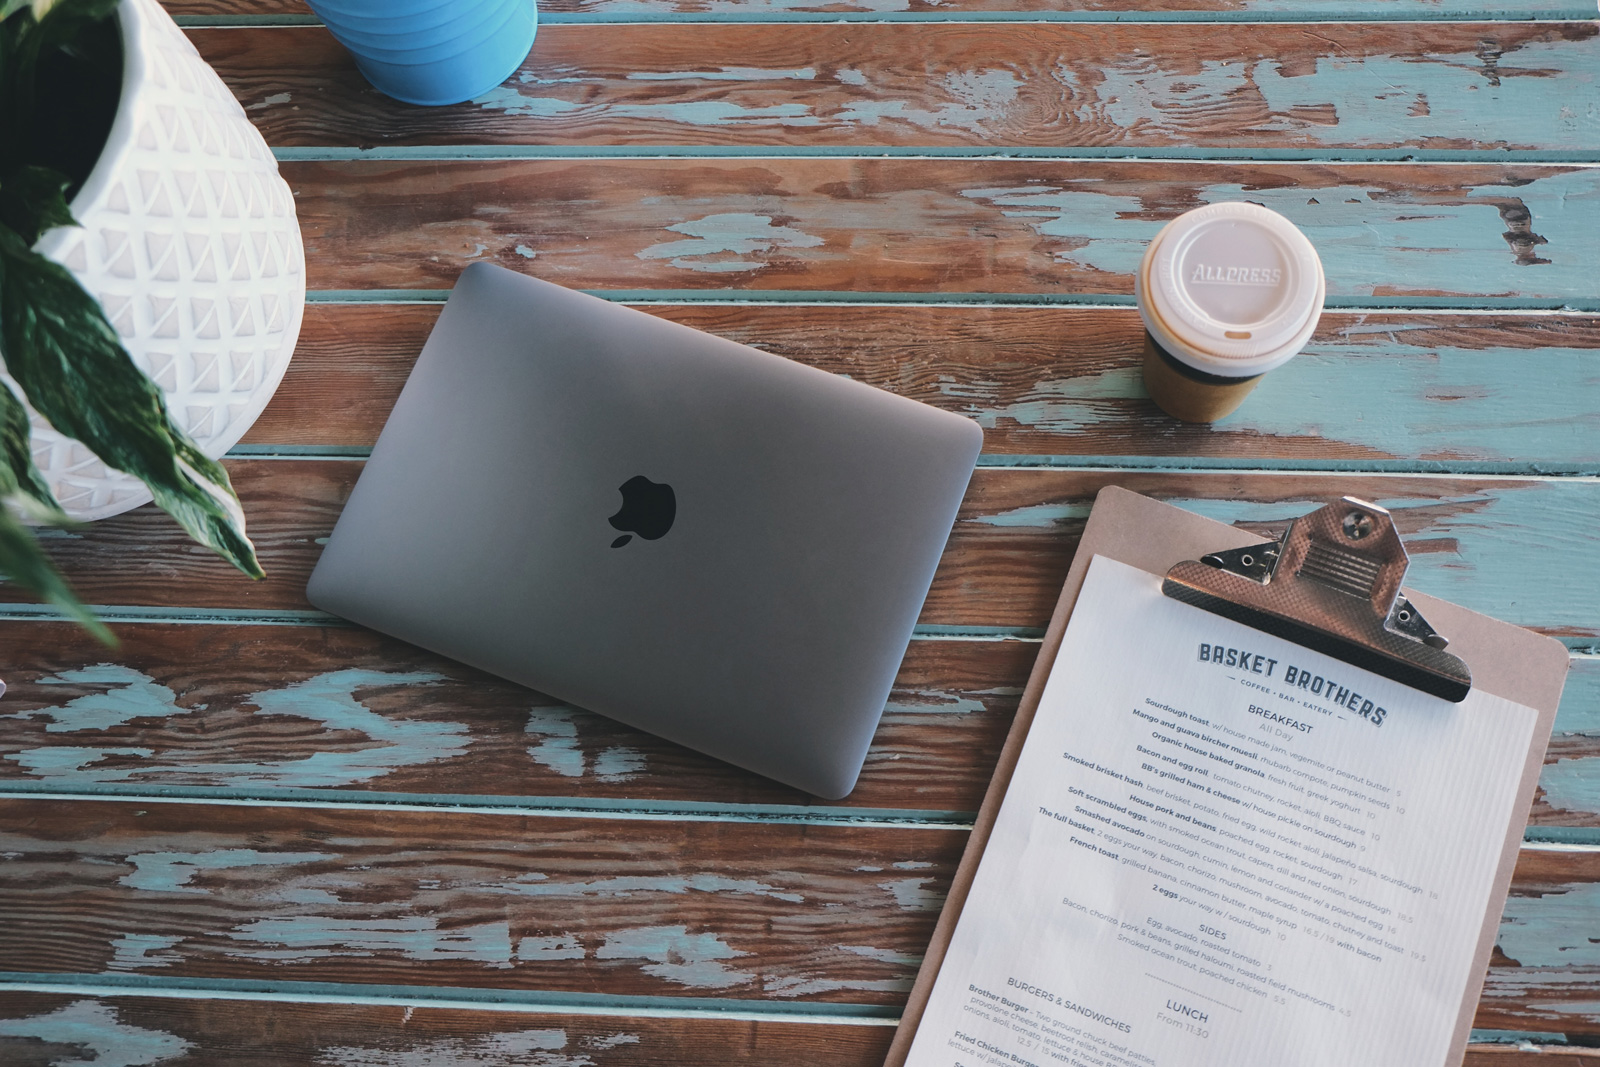 MacBook Space Grey Review